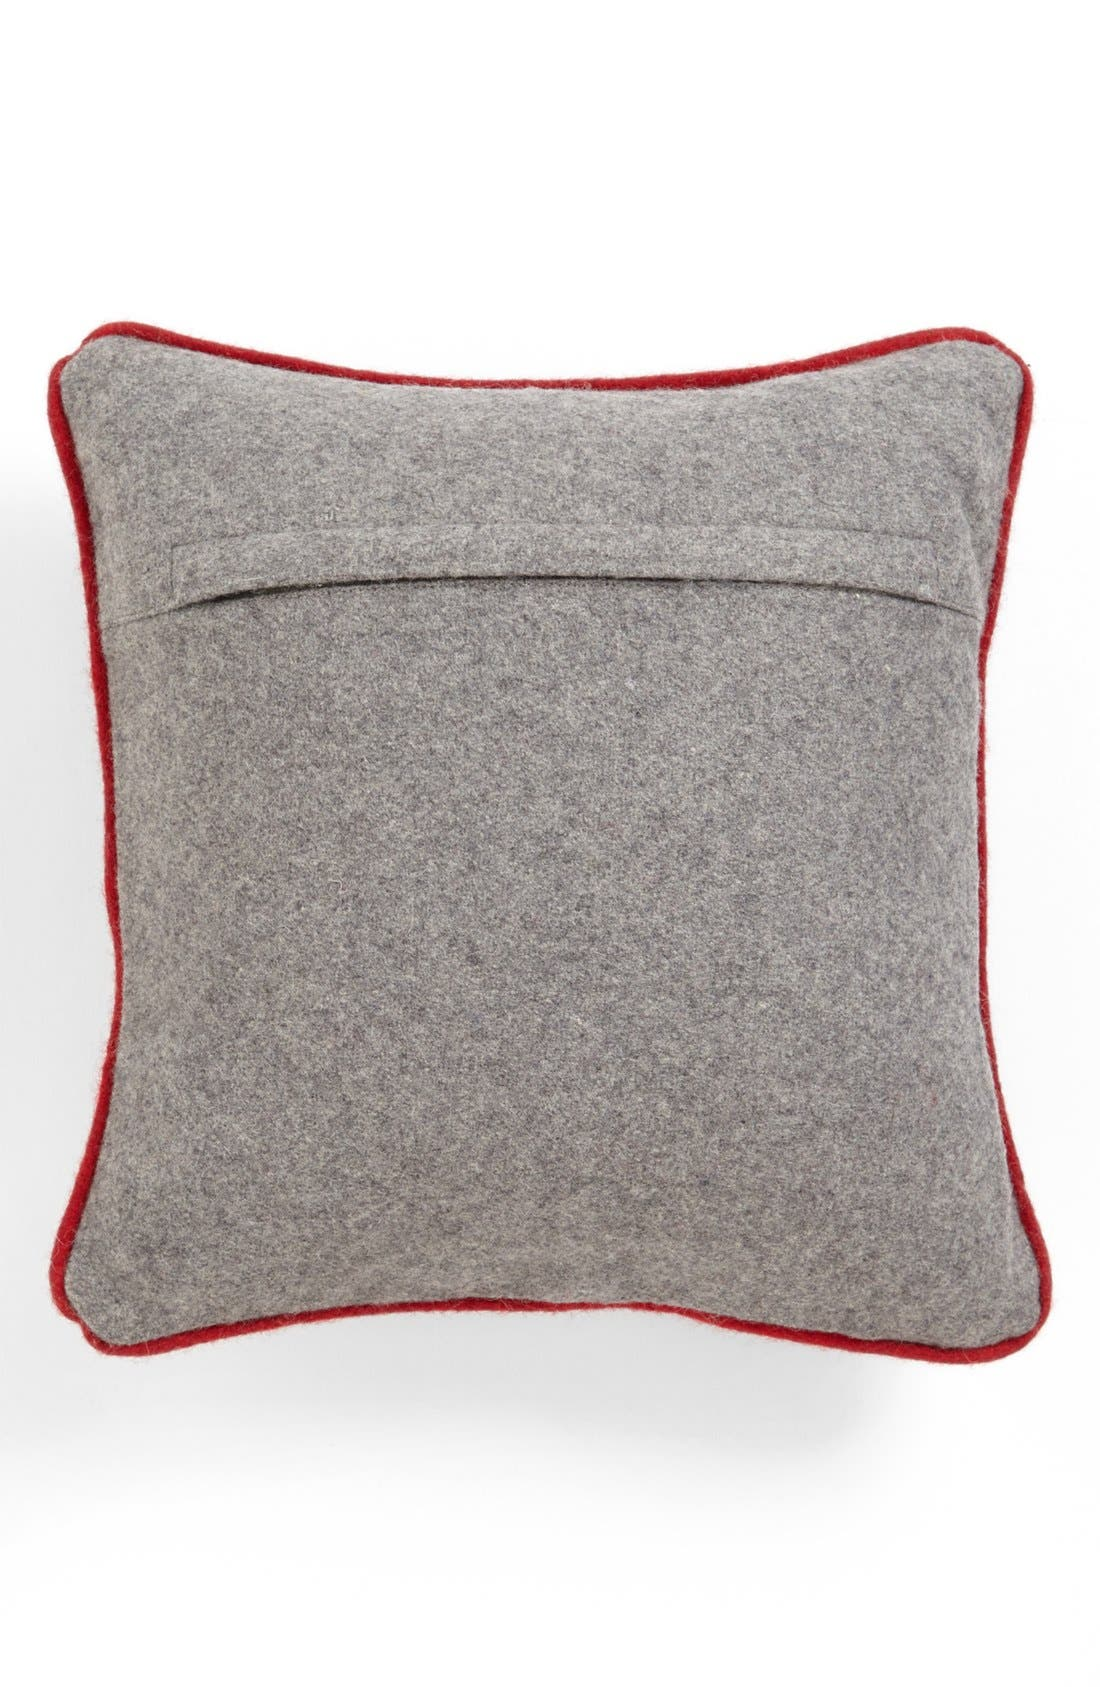 Alternate Image 2  - Shiraleah 'Merry Christmas' Square Pillow